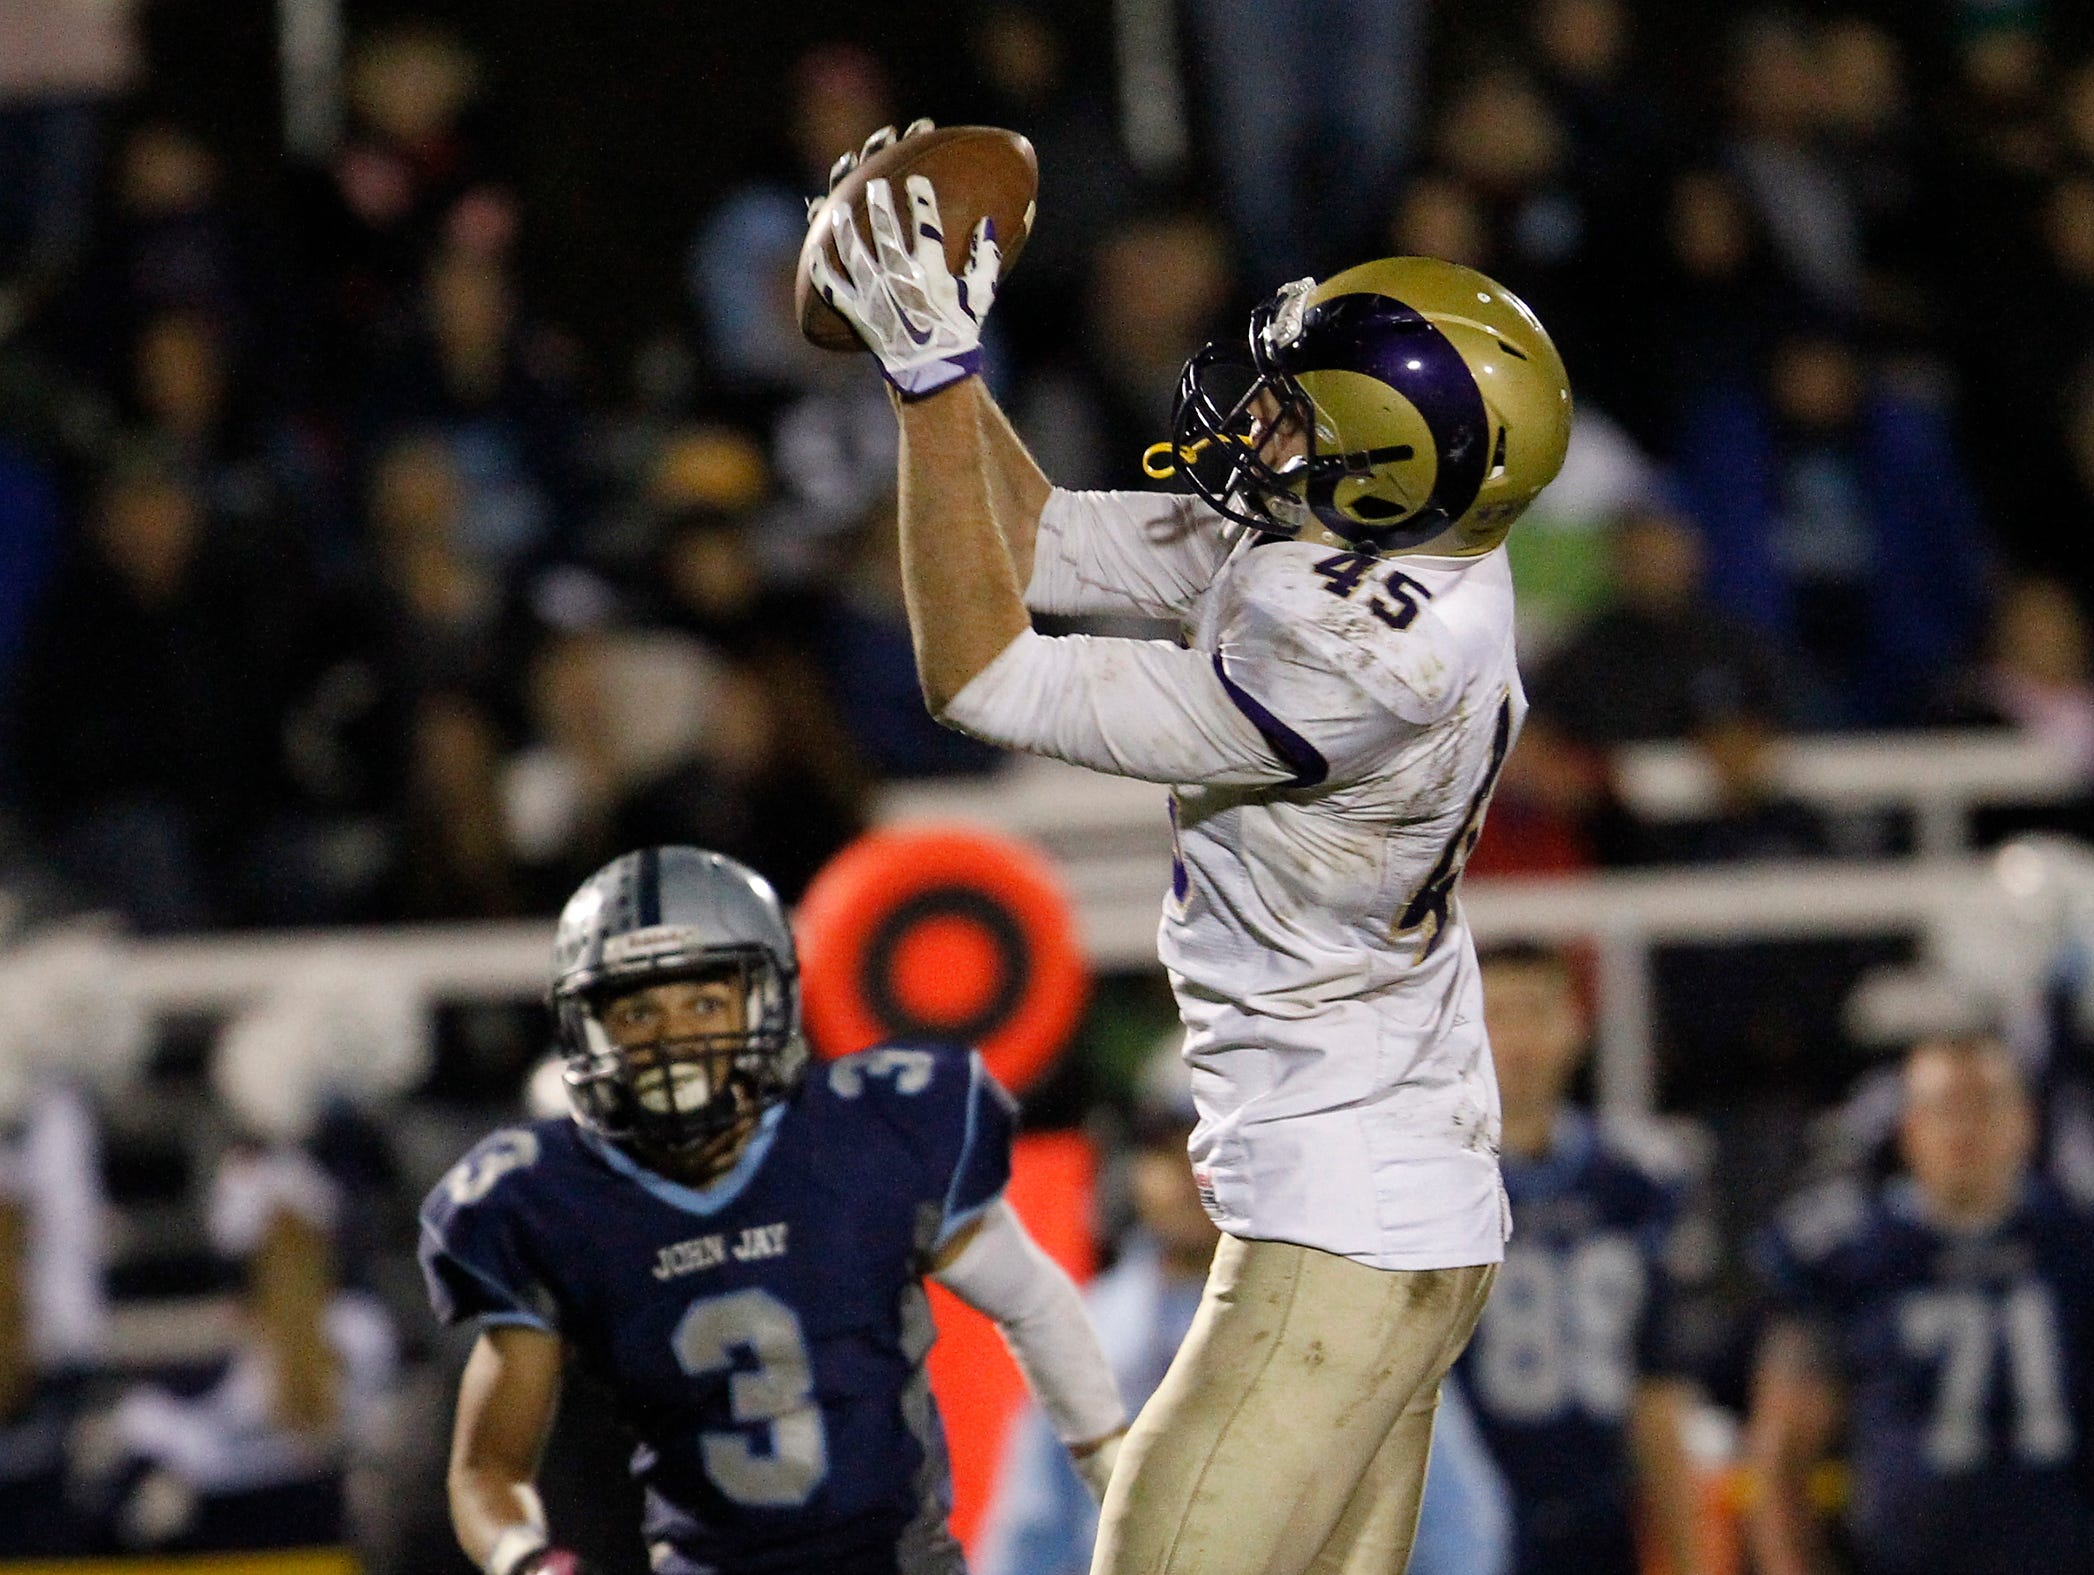 Clarkstown North's Martin Mulvey (45) makes a reception during their 21-7 loss to John Jay High School in the class AA semi-final football game in East Fishkill on Friday, Oct. 30, 2015.